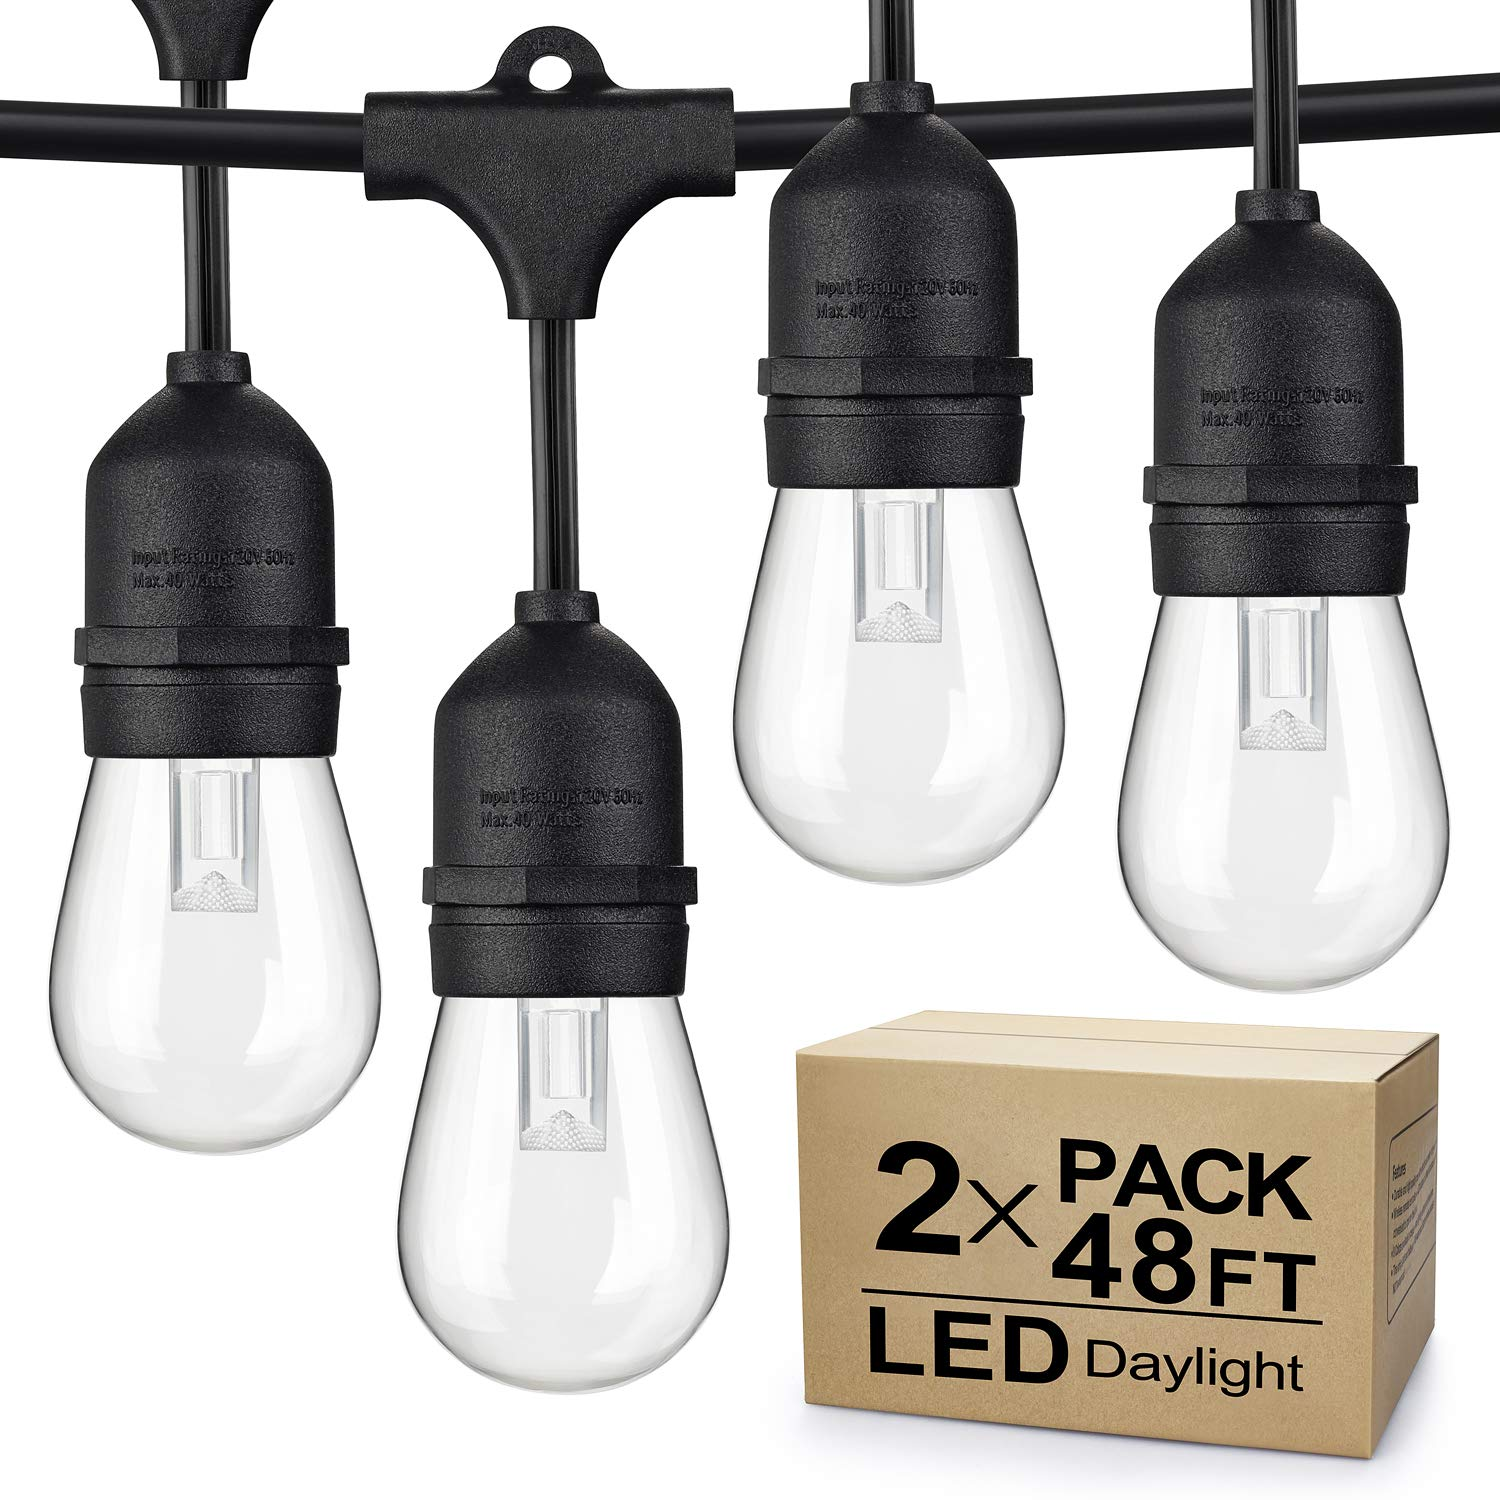 2-Pack Dimmable LED Outdoor String Lights for Patio Daylight White, IP65 Waterproof Hanging Edison Bulbs, 48Ft Commercial Grade Lights String Create Ambience for Garden Backyard Party (Total 96ft) by SHINE HAI